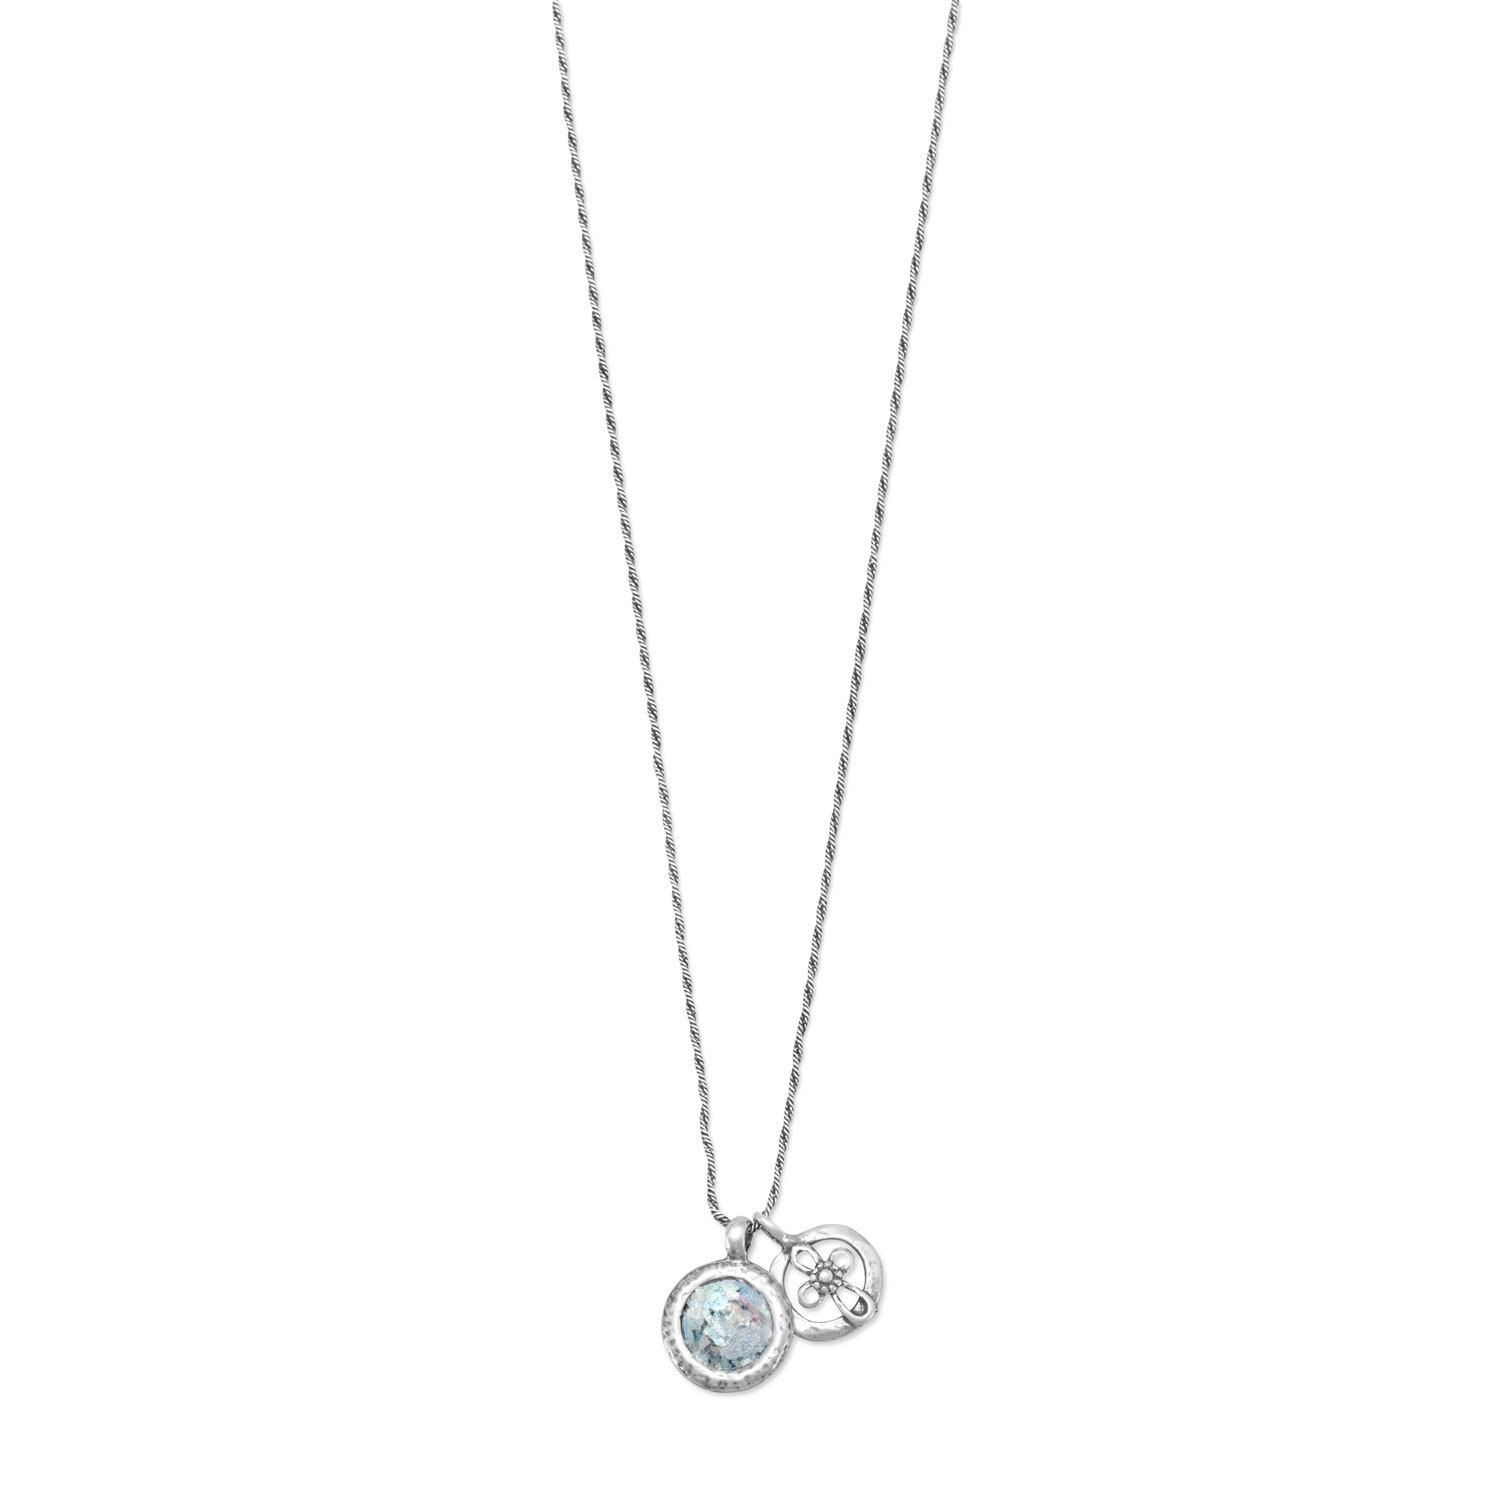 Roman Glass and Cut Out Cross Charm Necklace